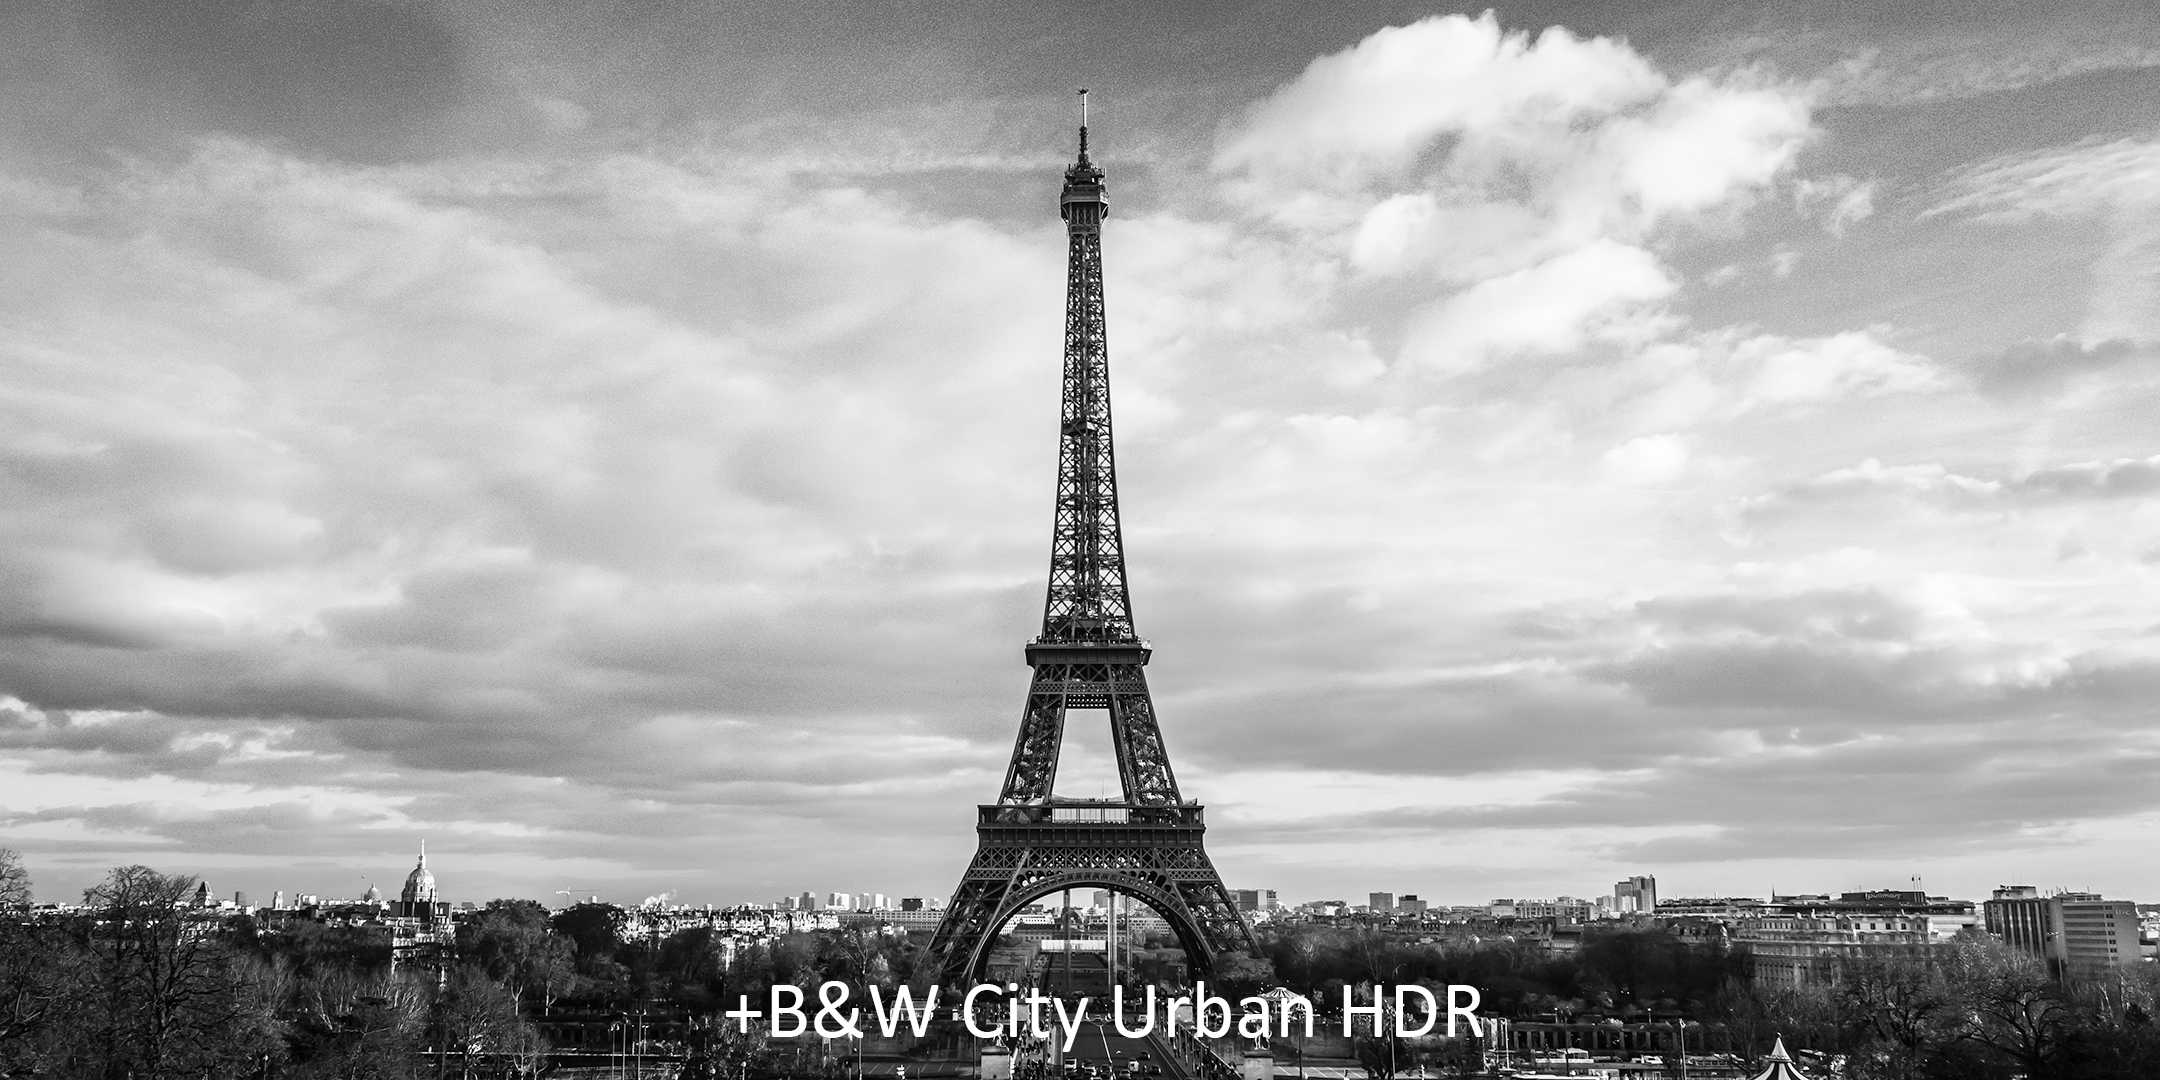 + B&W City Urban HDR.jpg